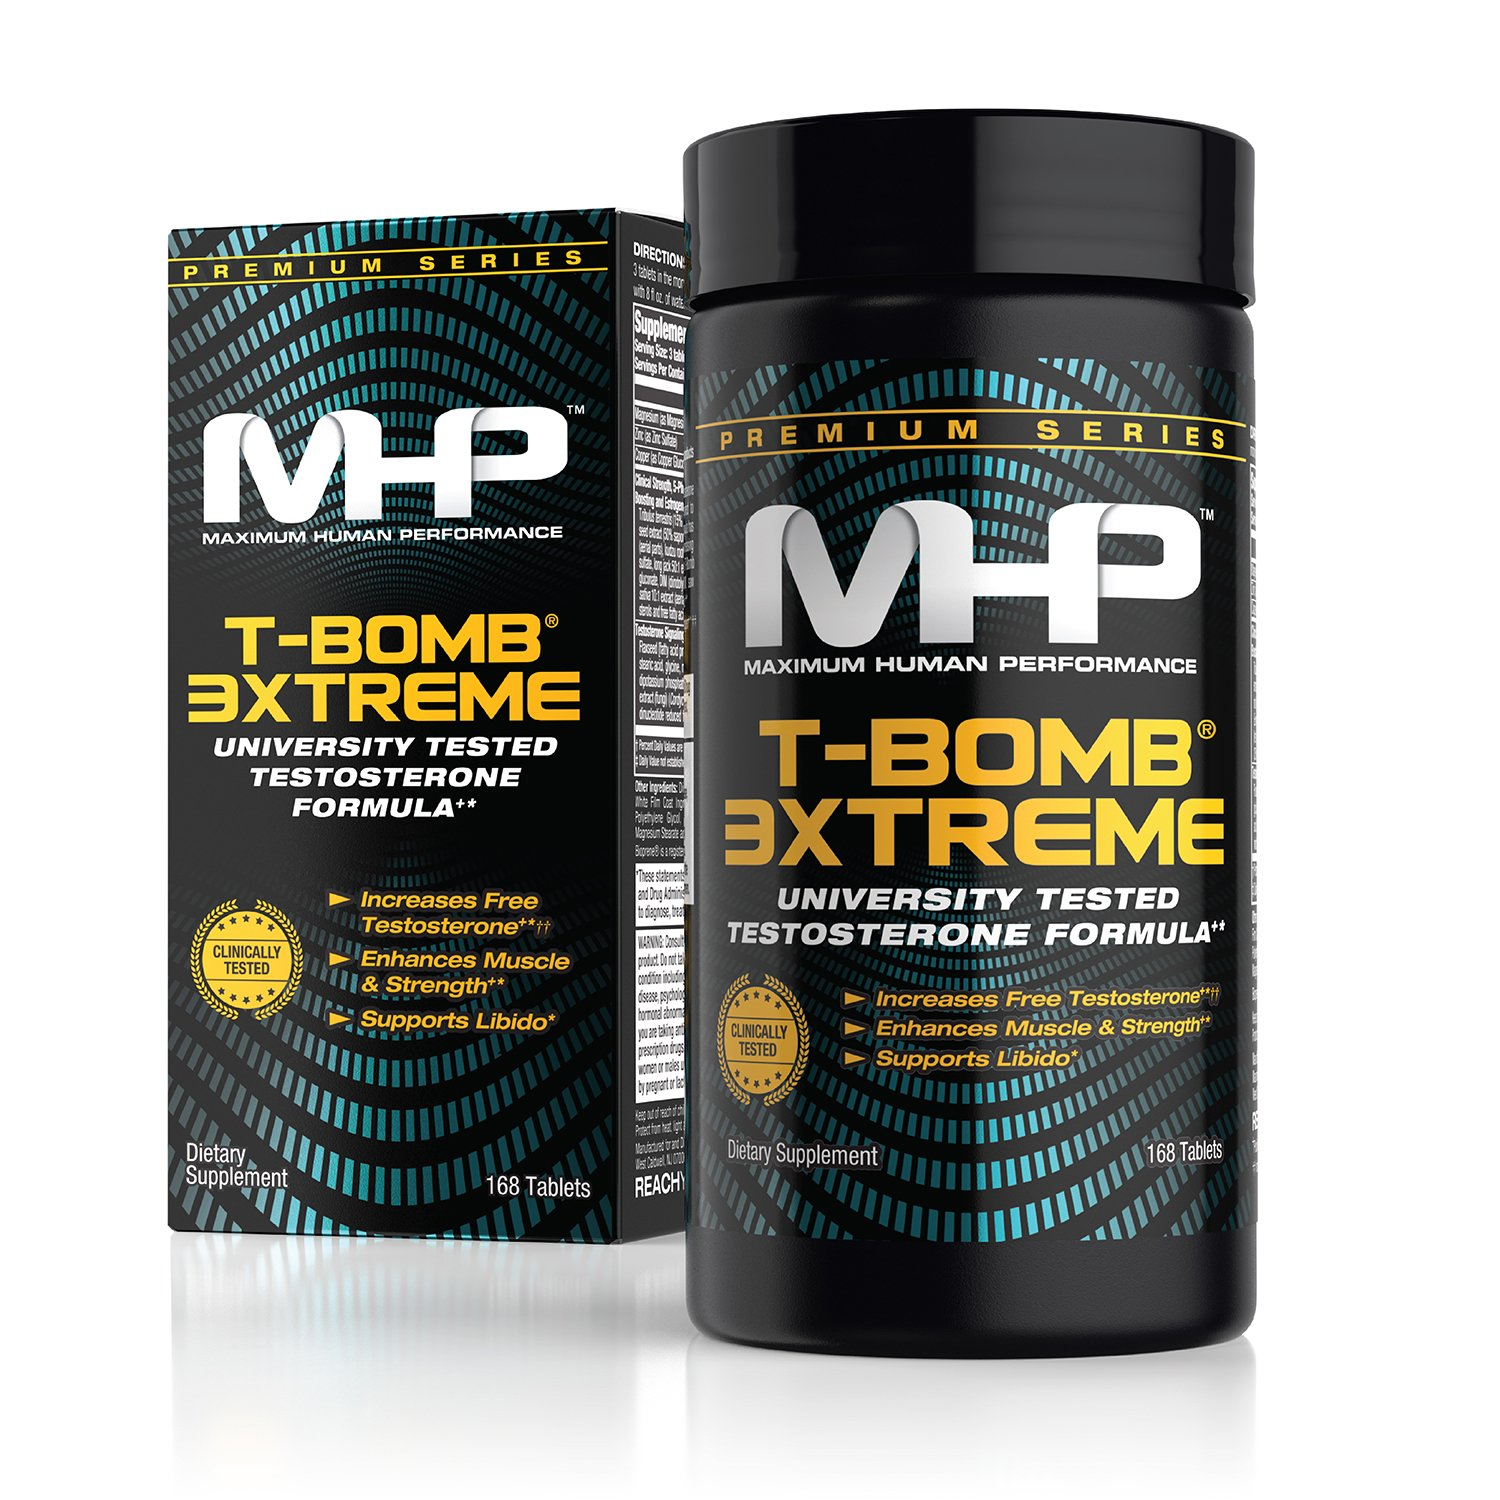 MHP Clinical Strength T-Bomb 3xtreme, Five-Phase Hormone Optimizing Complex, 168 Count (Packaging May Vary)